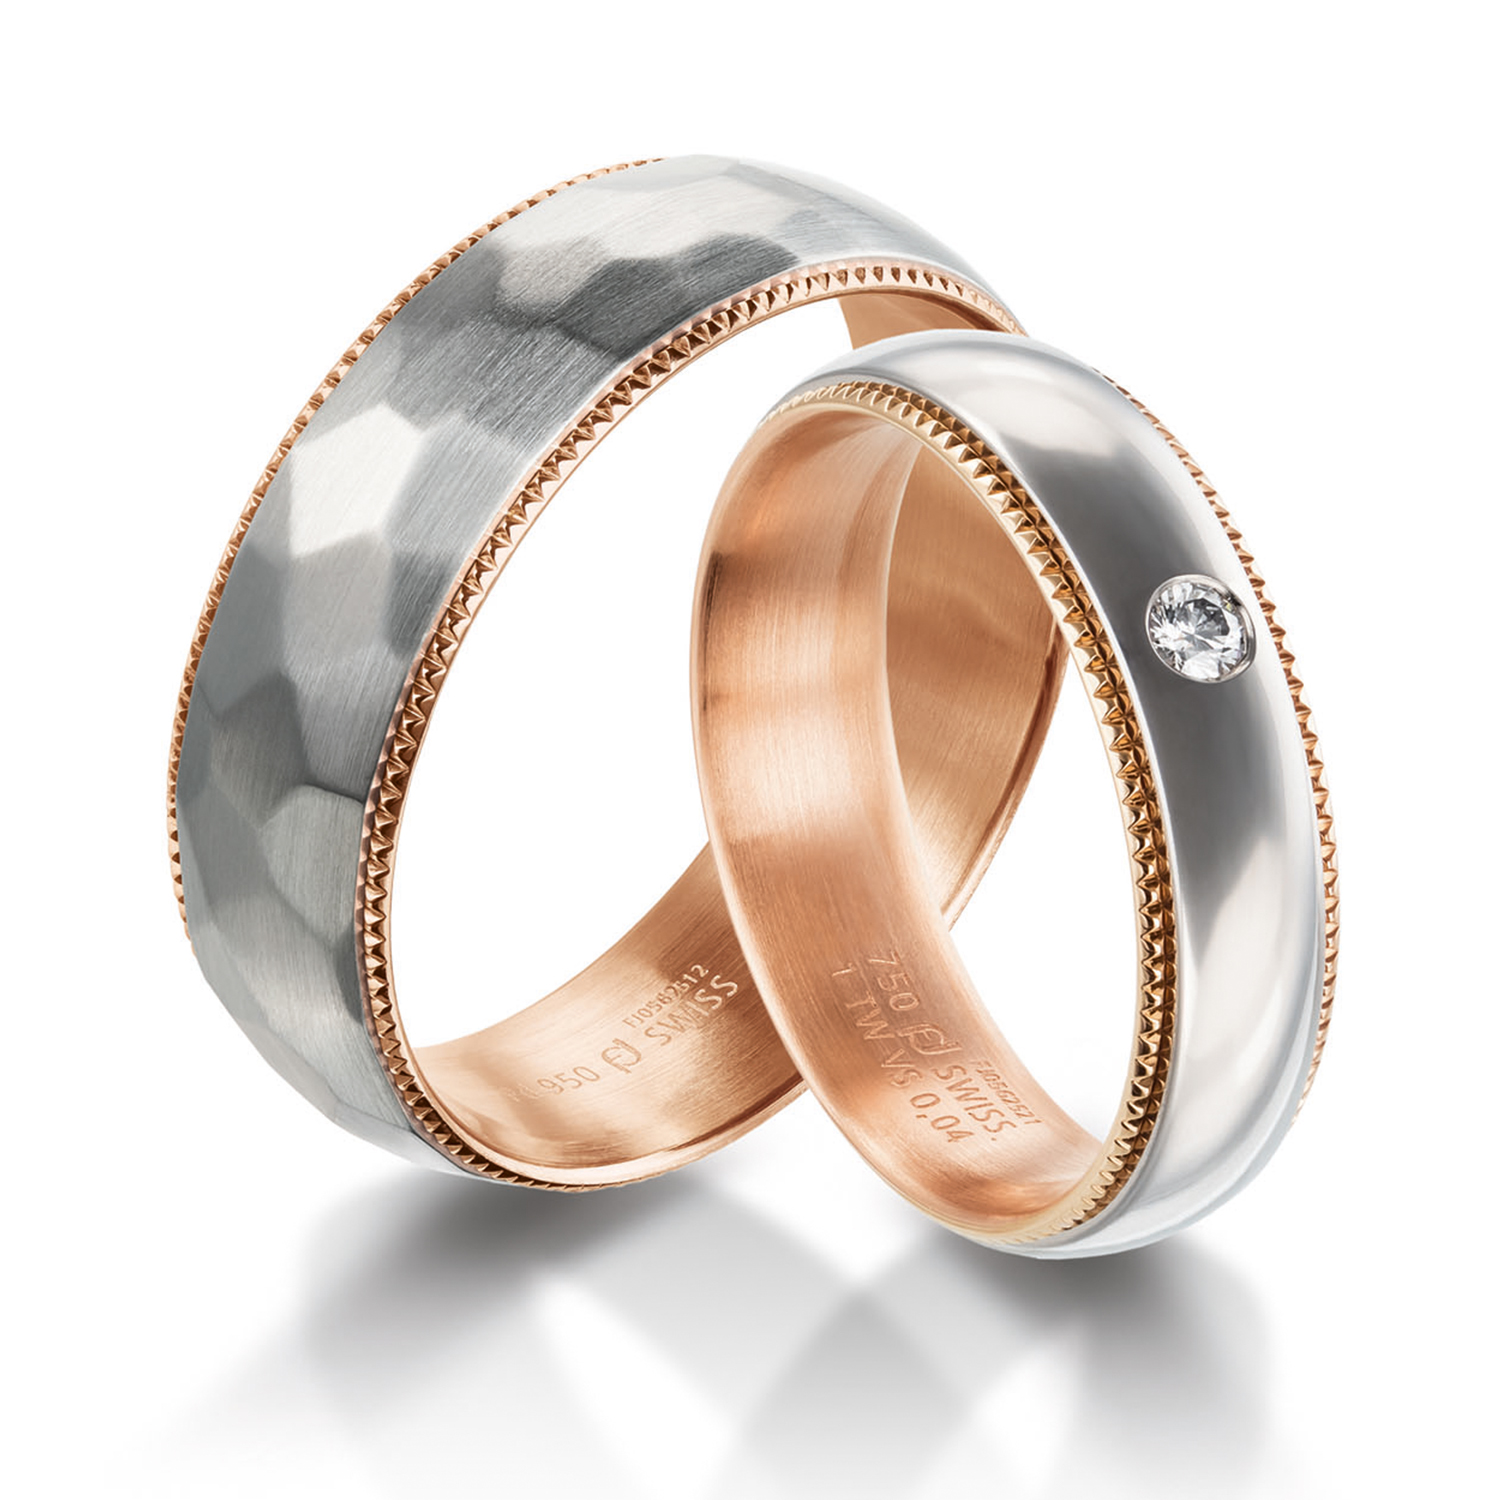 milgrain rings in gold, platinum, palladium, carbon and black with diamonds Furrer Jacot